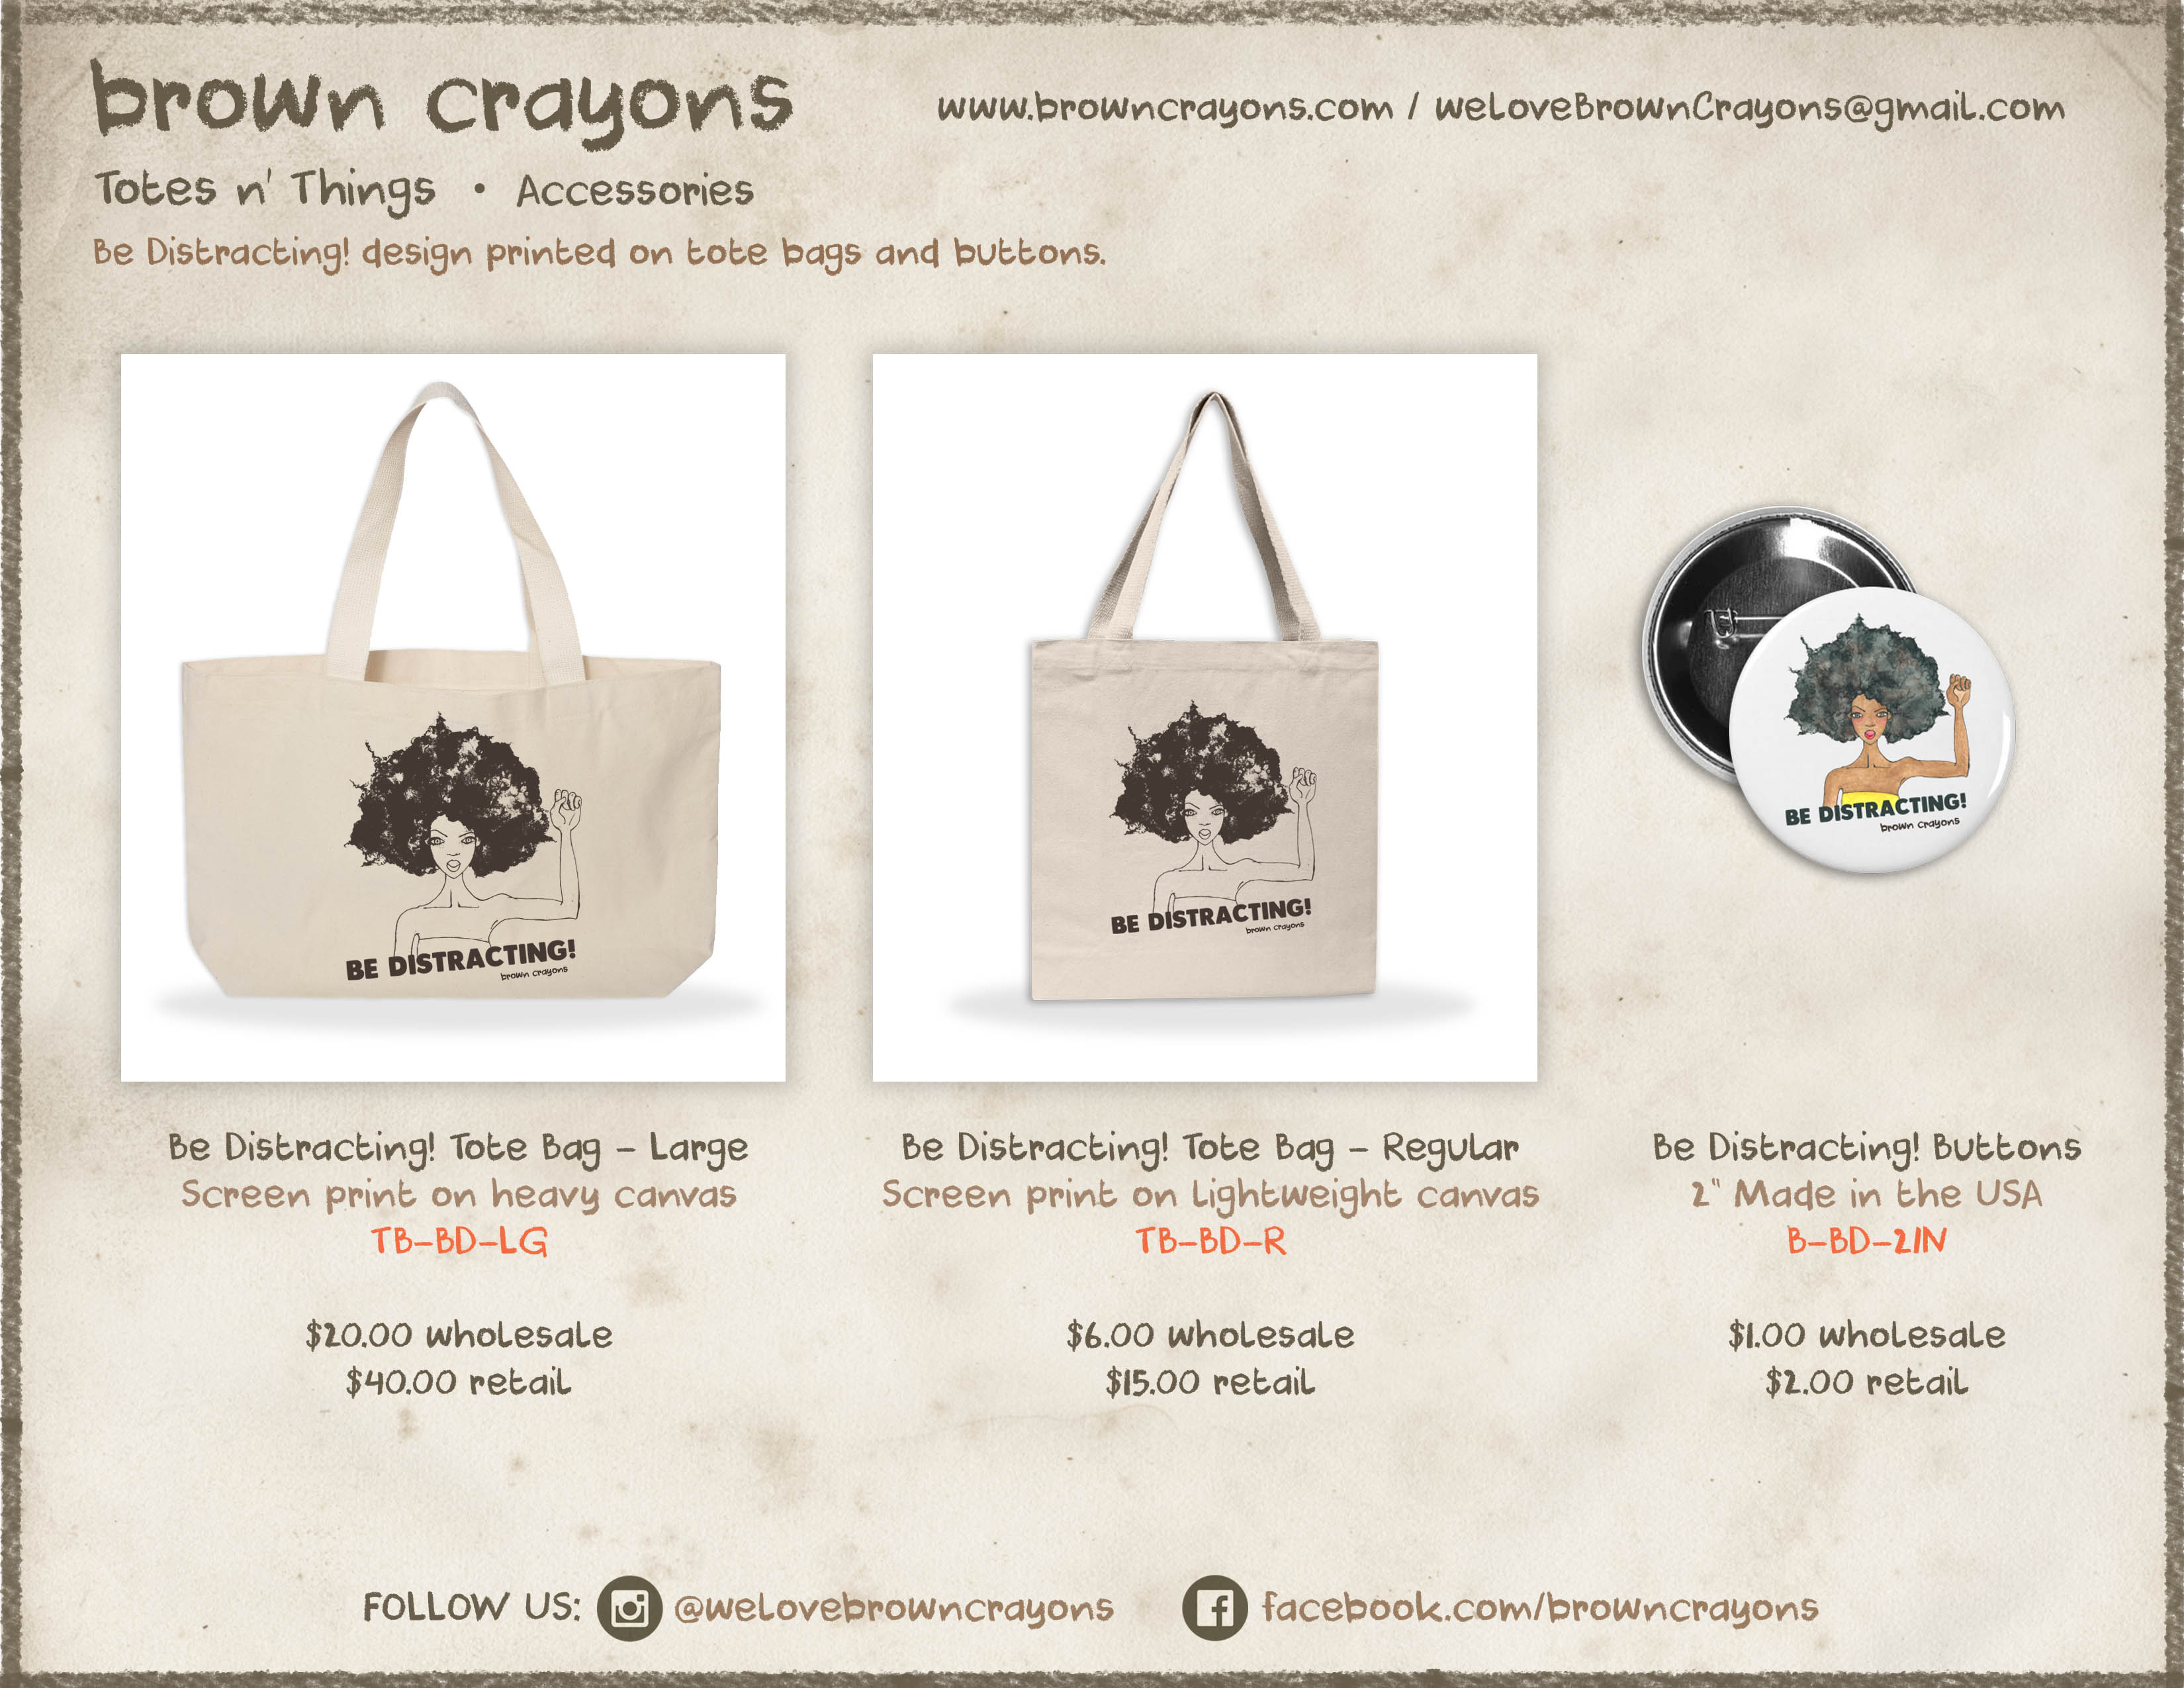 Brown Crayons Accessories